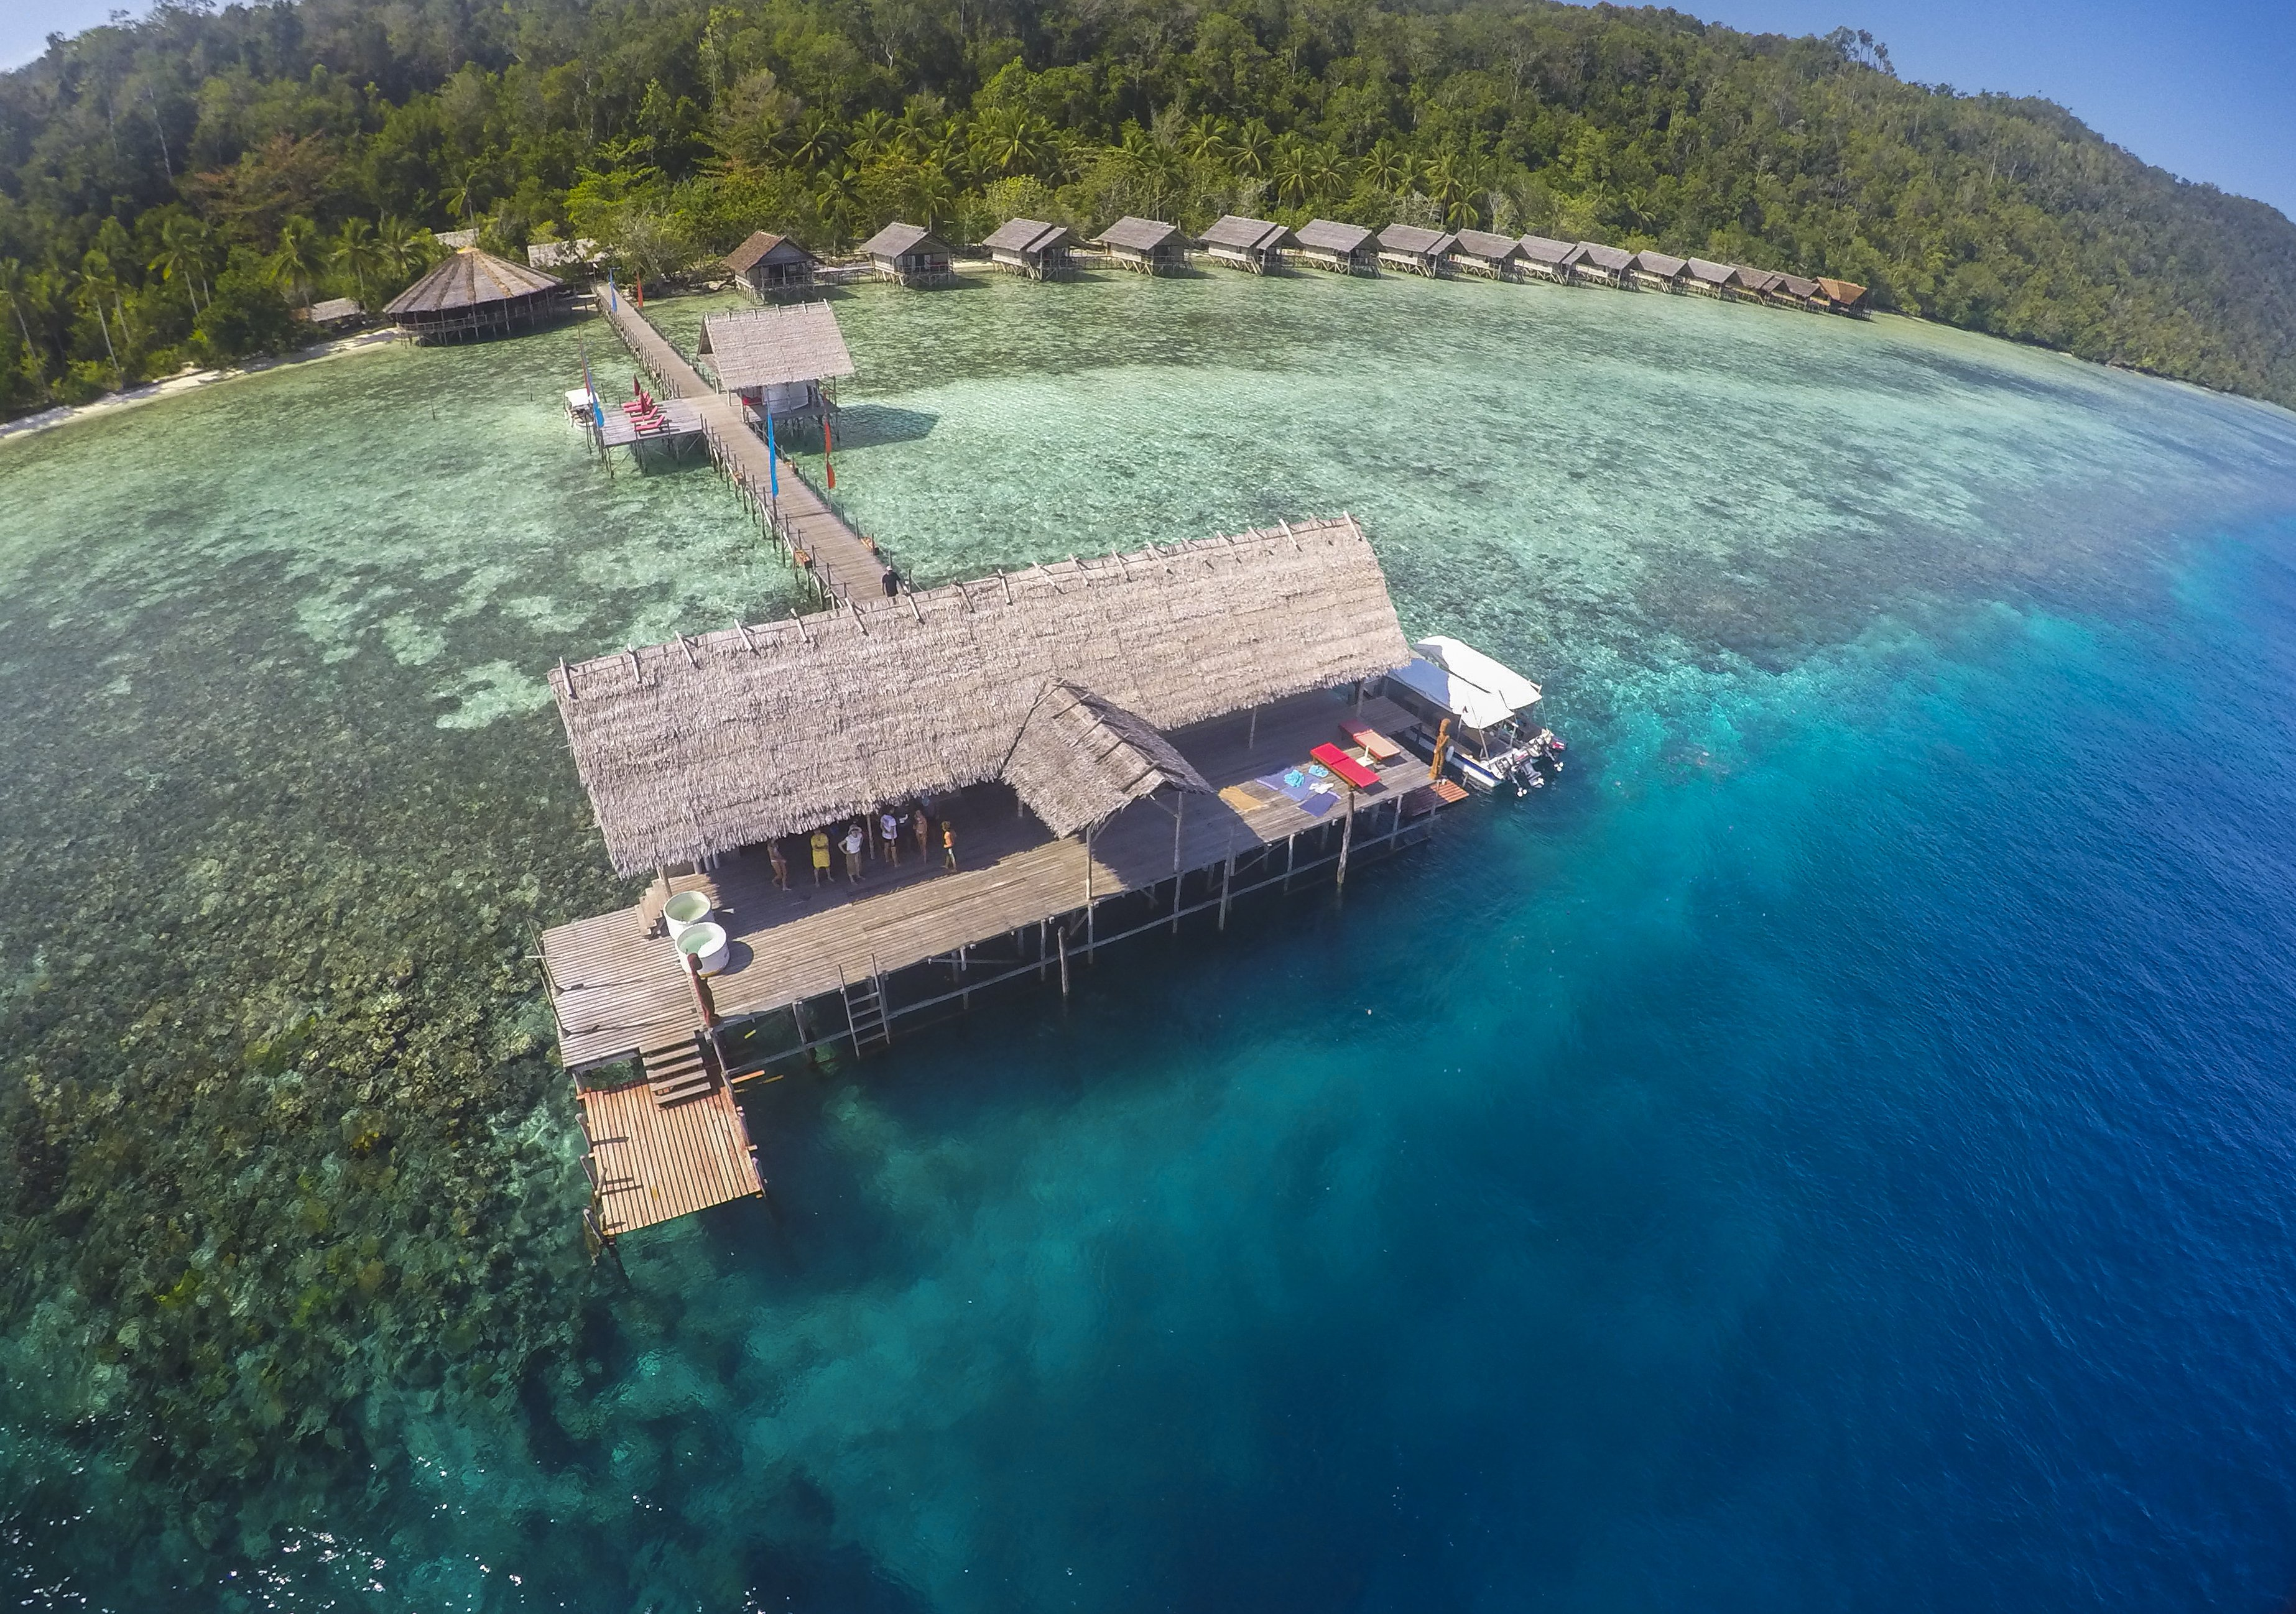 the dive centre building of Papua Explorers in an aerial shot with the water bungalows in the background